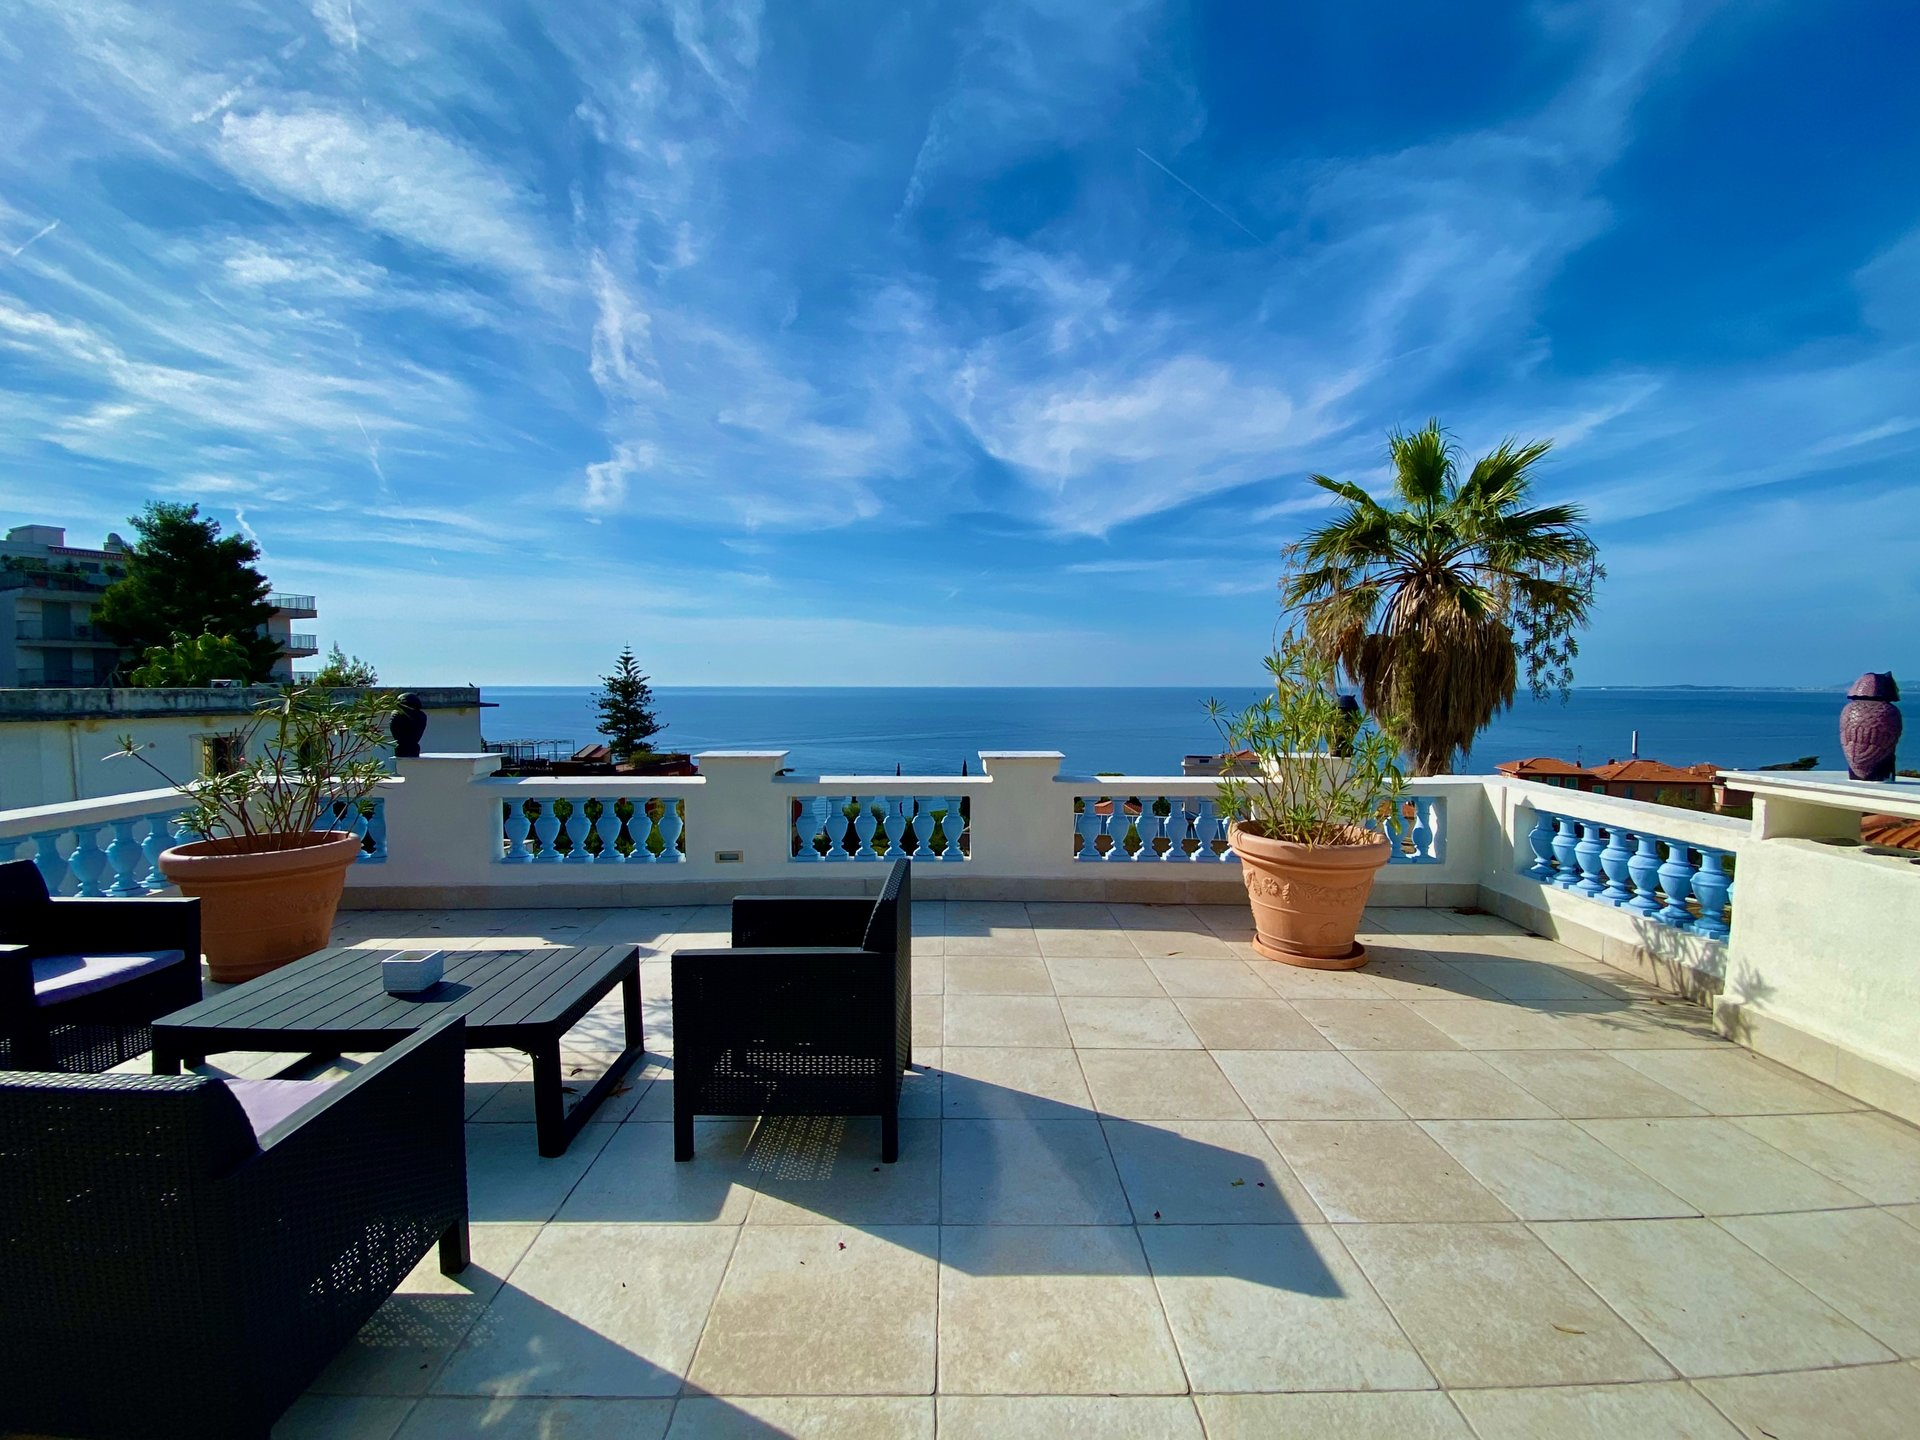 Nice Mont boron : Amazing bourgeois house renovated with Seaview